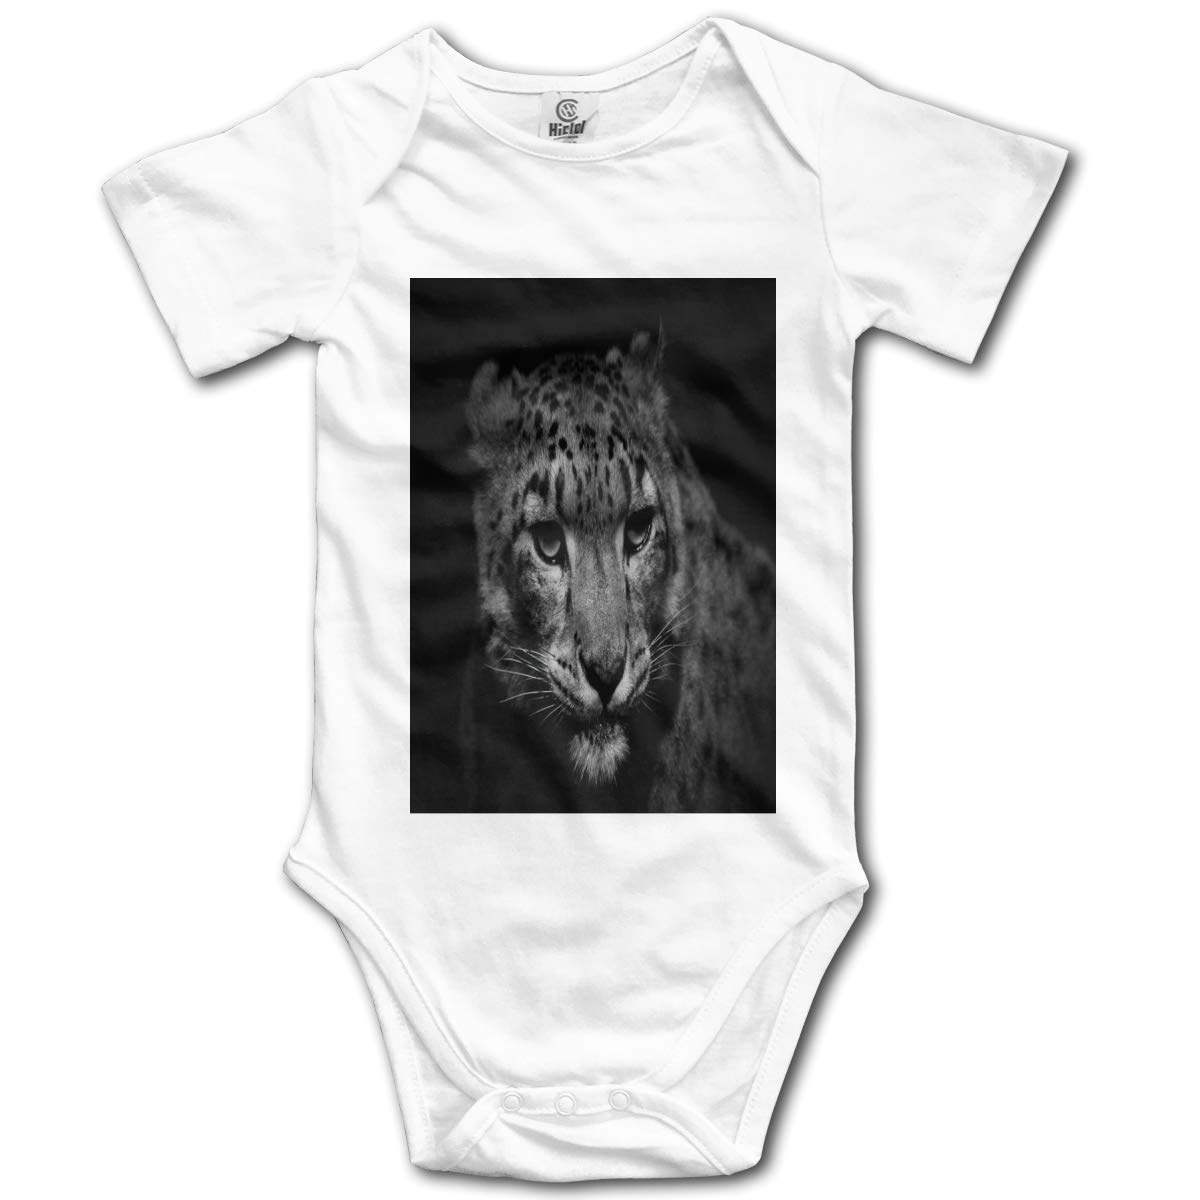 Fierce Leopard in The Dark Boys /& Girls Black Short Sleeve Romper Climbing Clothes for 0-24 Months